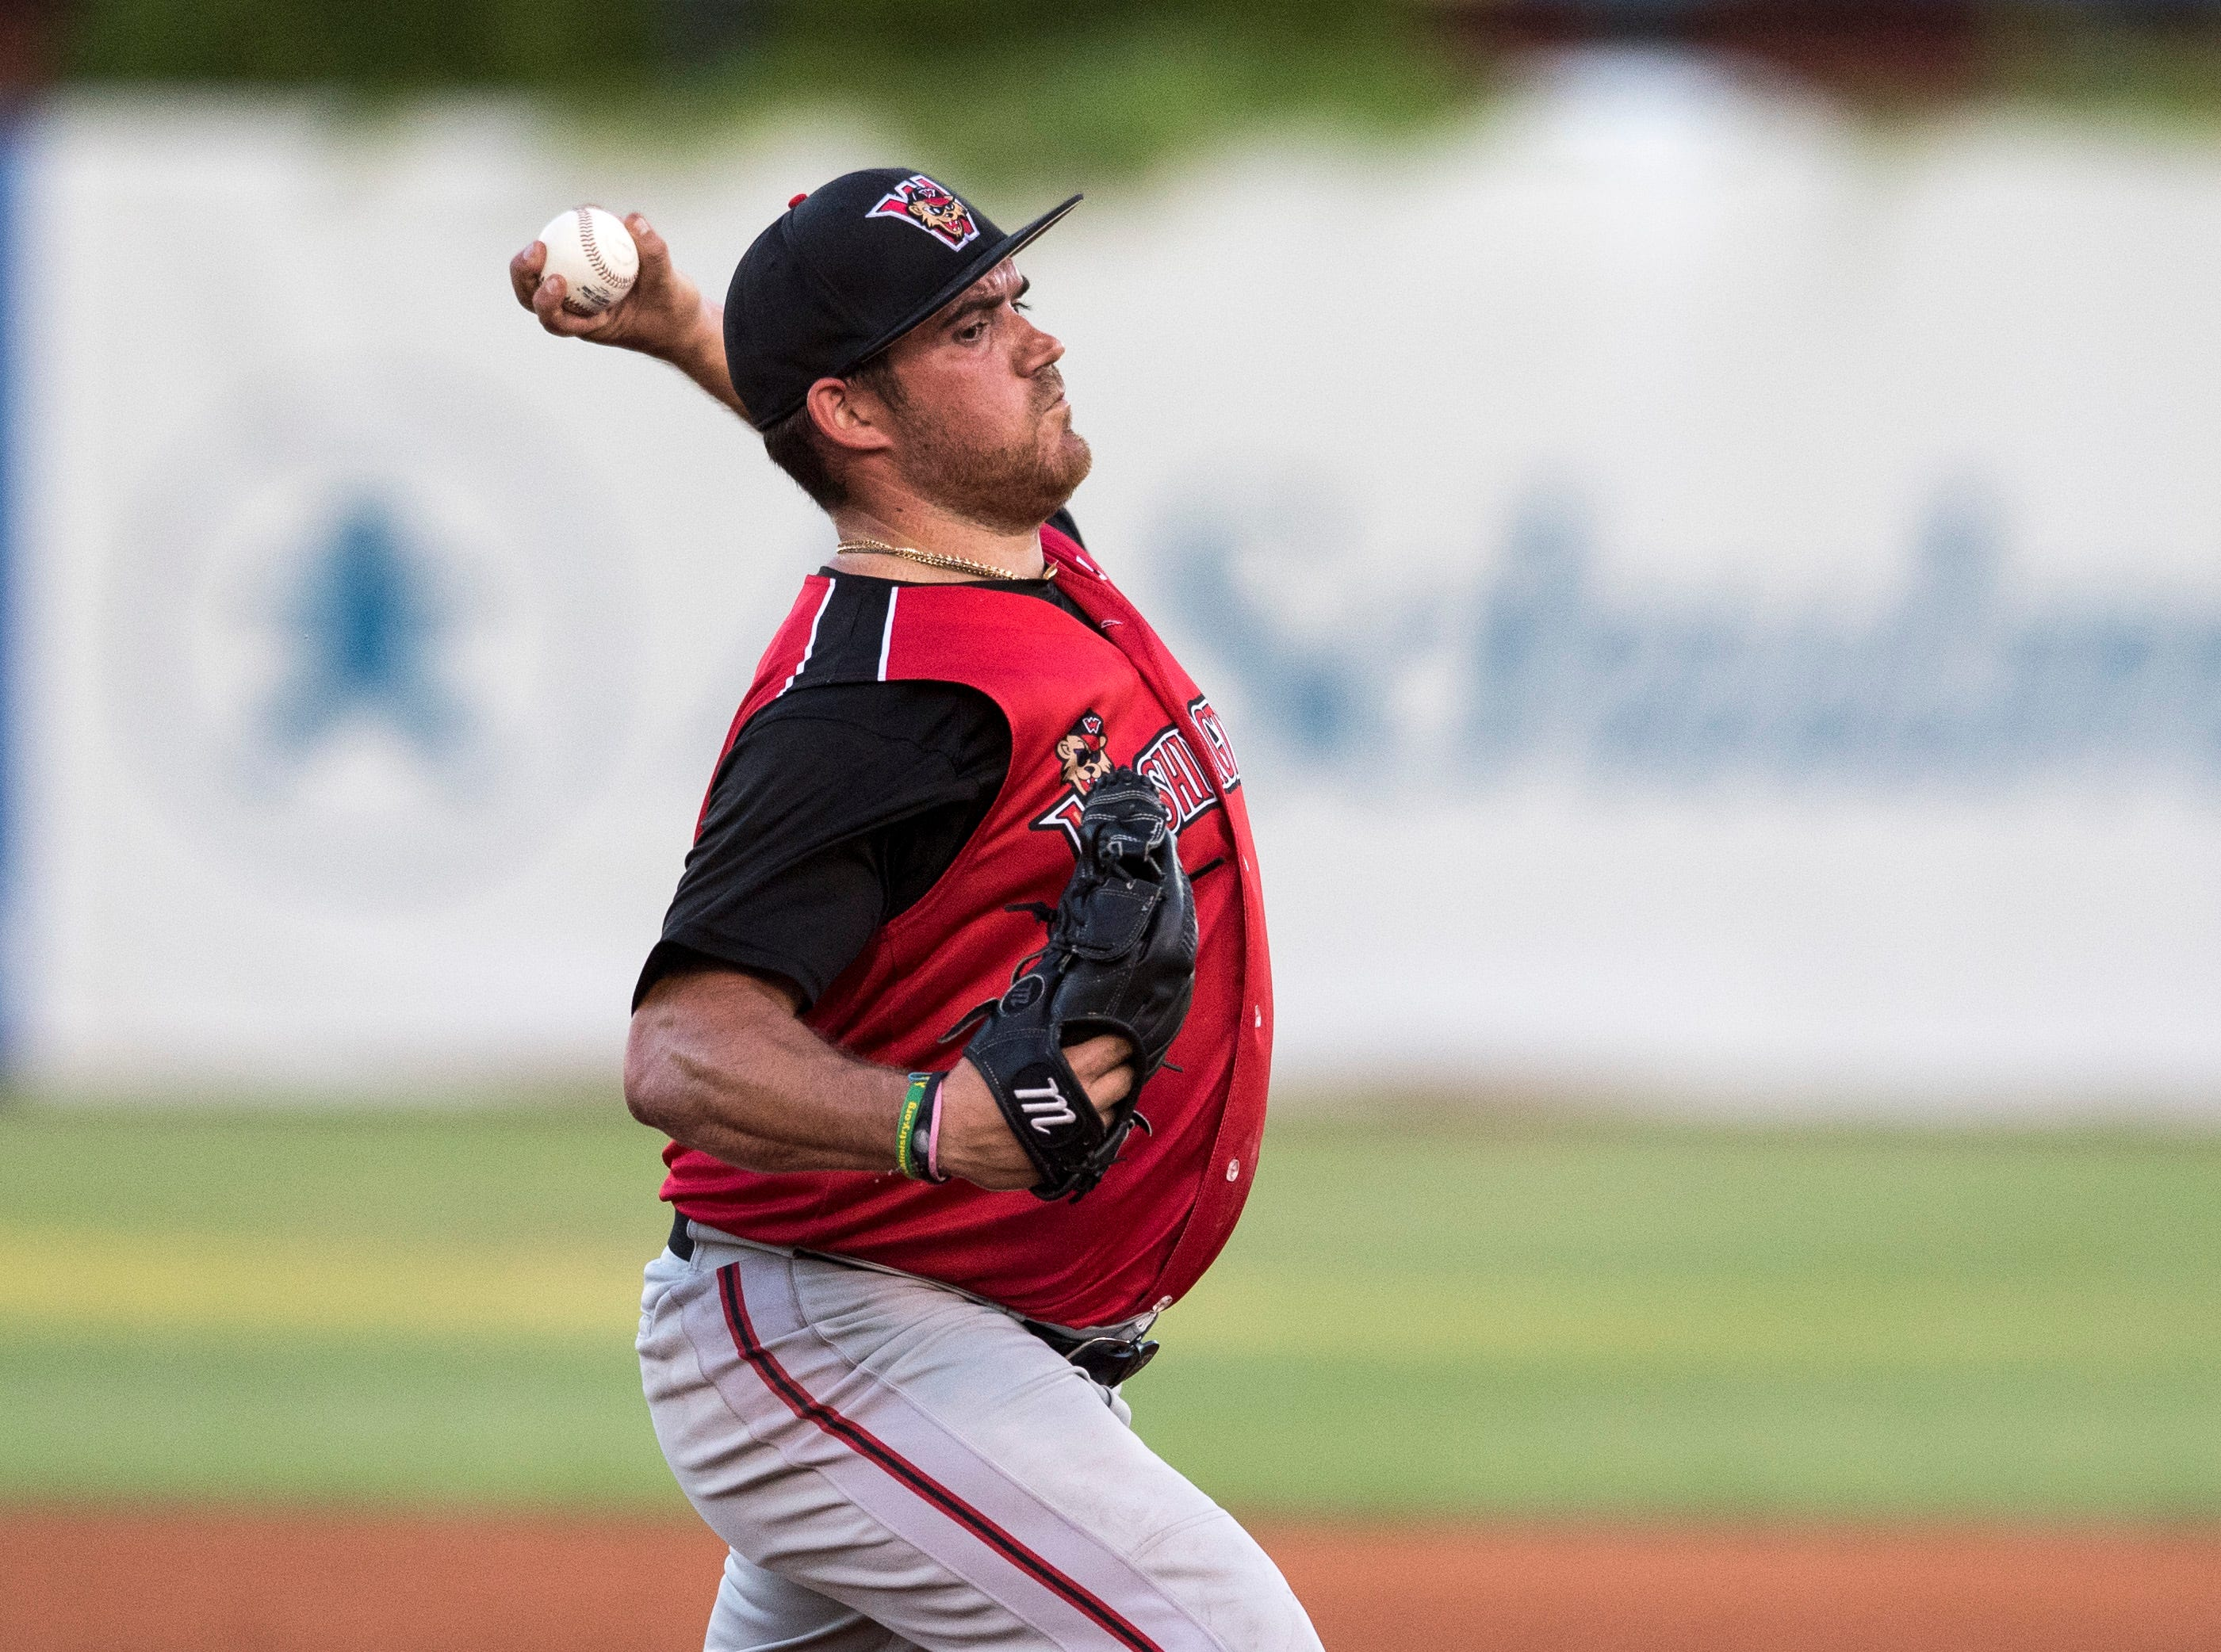 Washington's Thomas Dorminy (13) pitches the ball during game one of the Frontier League Division Series at Bosse Field against the Evansville Otters Tuesday, September 4, 2018.